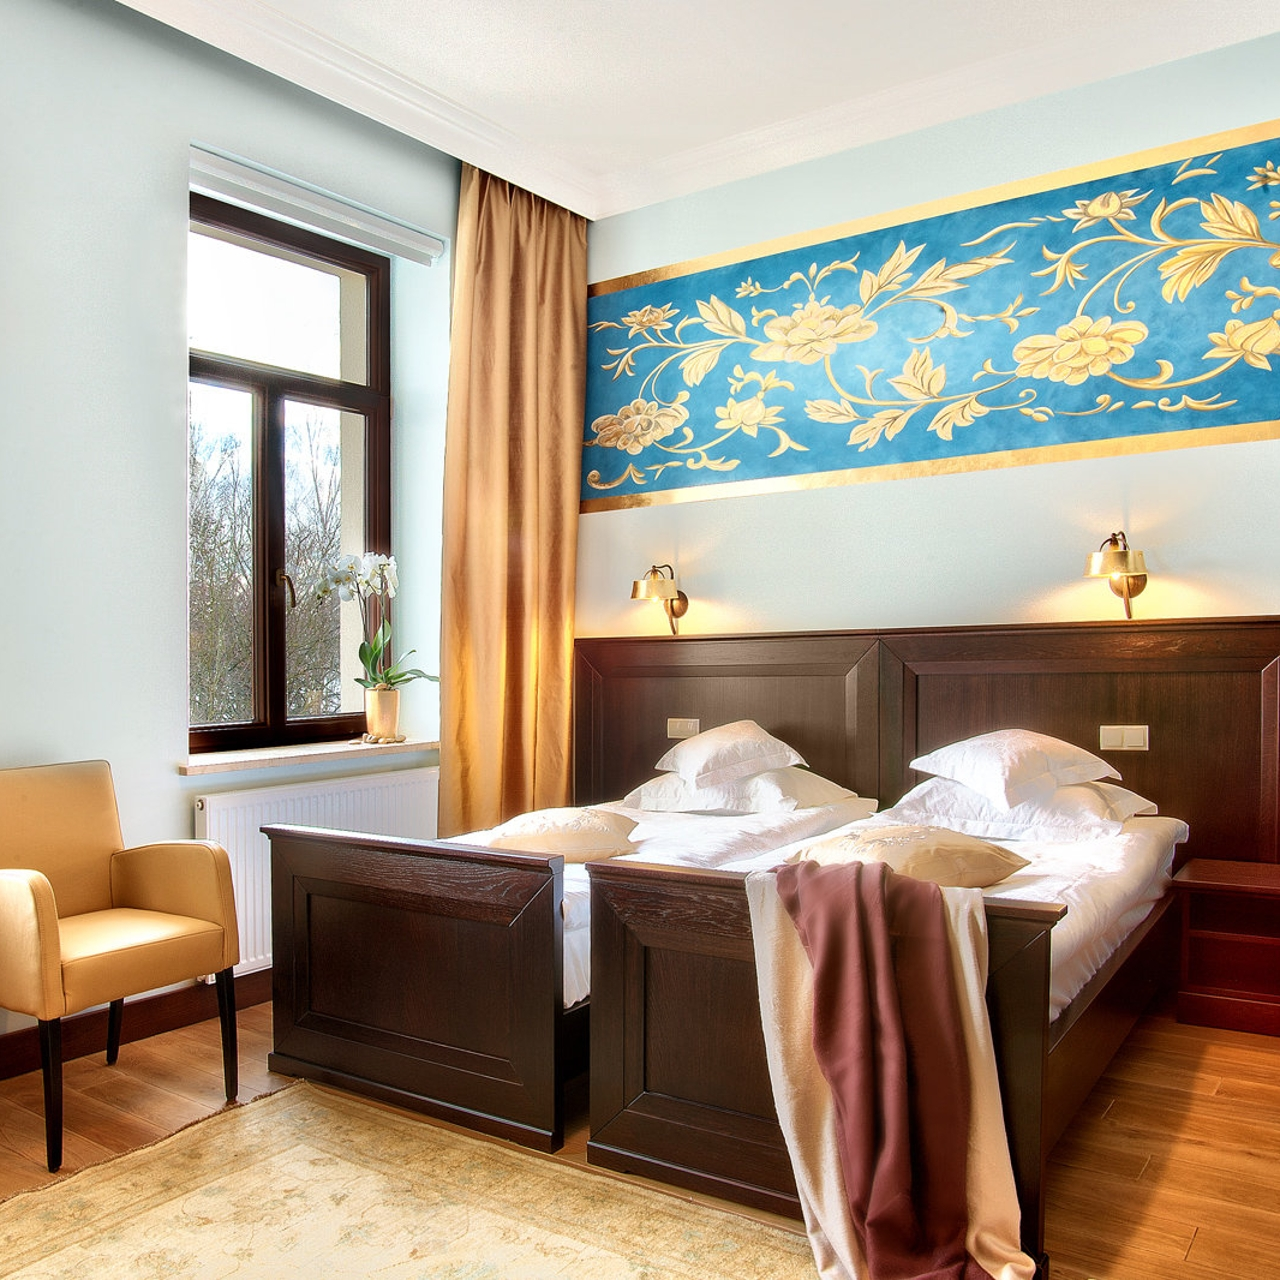 Boutiquehotel Aristo Poland At Hrs With Free Services